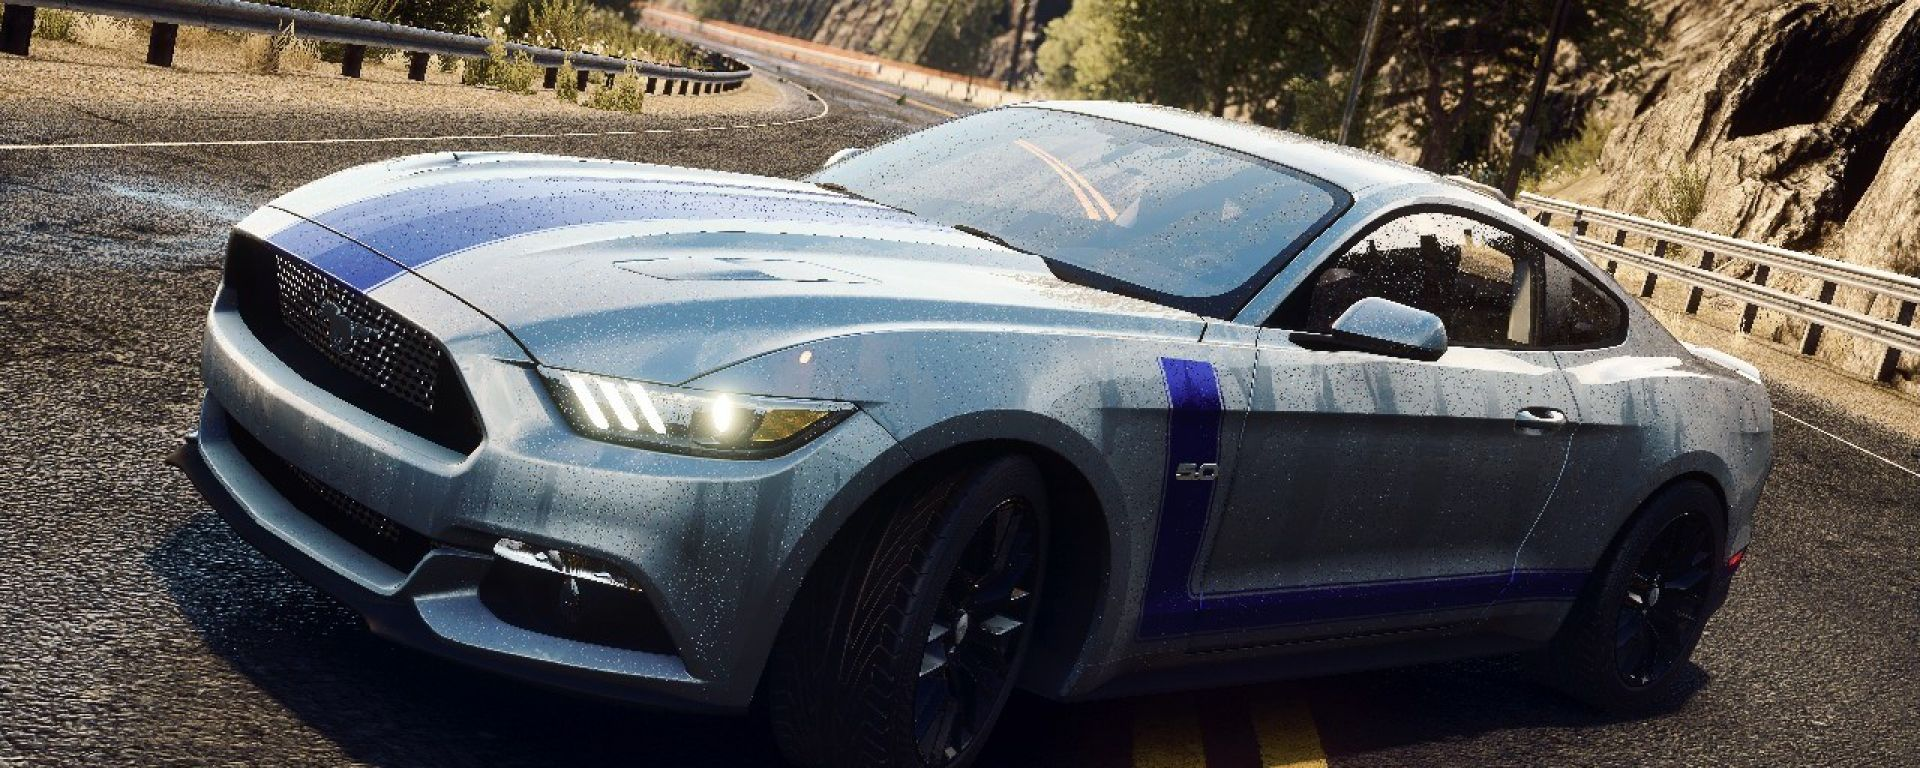 Ford Mustang 2015, star a Hollywood